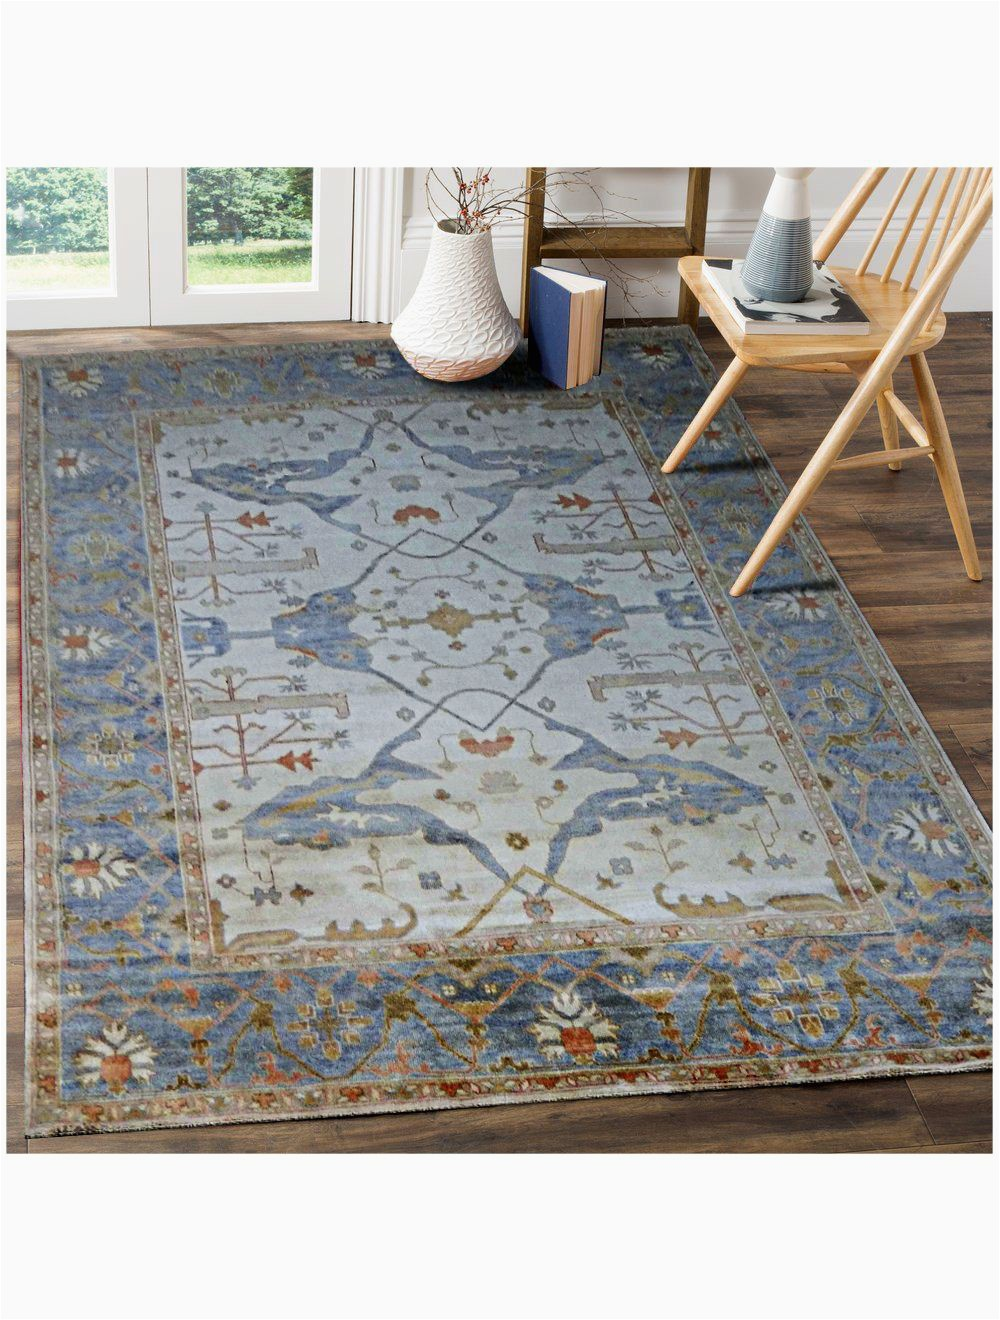 aldo persian traditional floral blue hand knotted wool rug 4 x 6